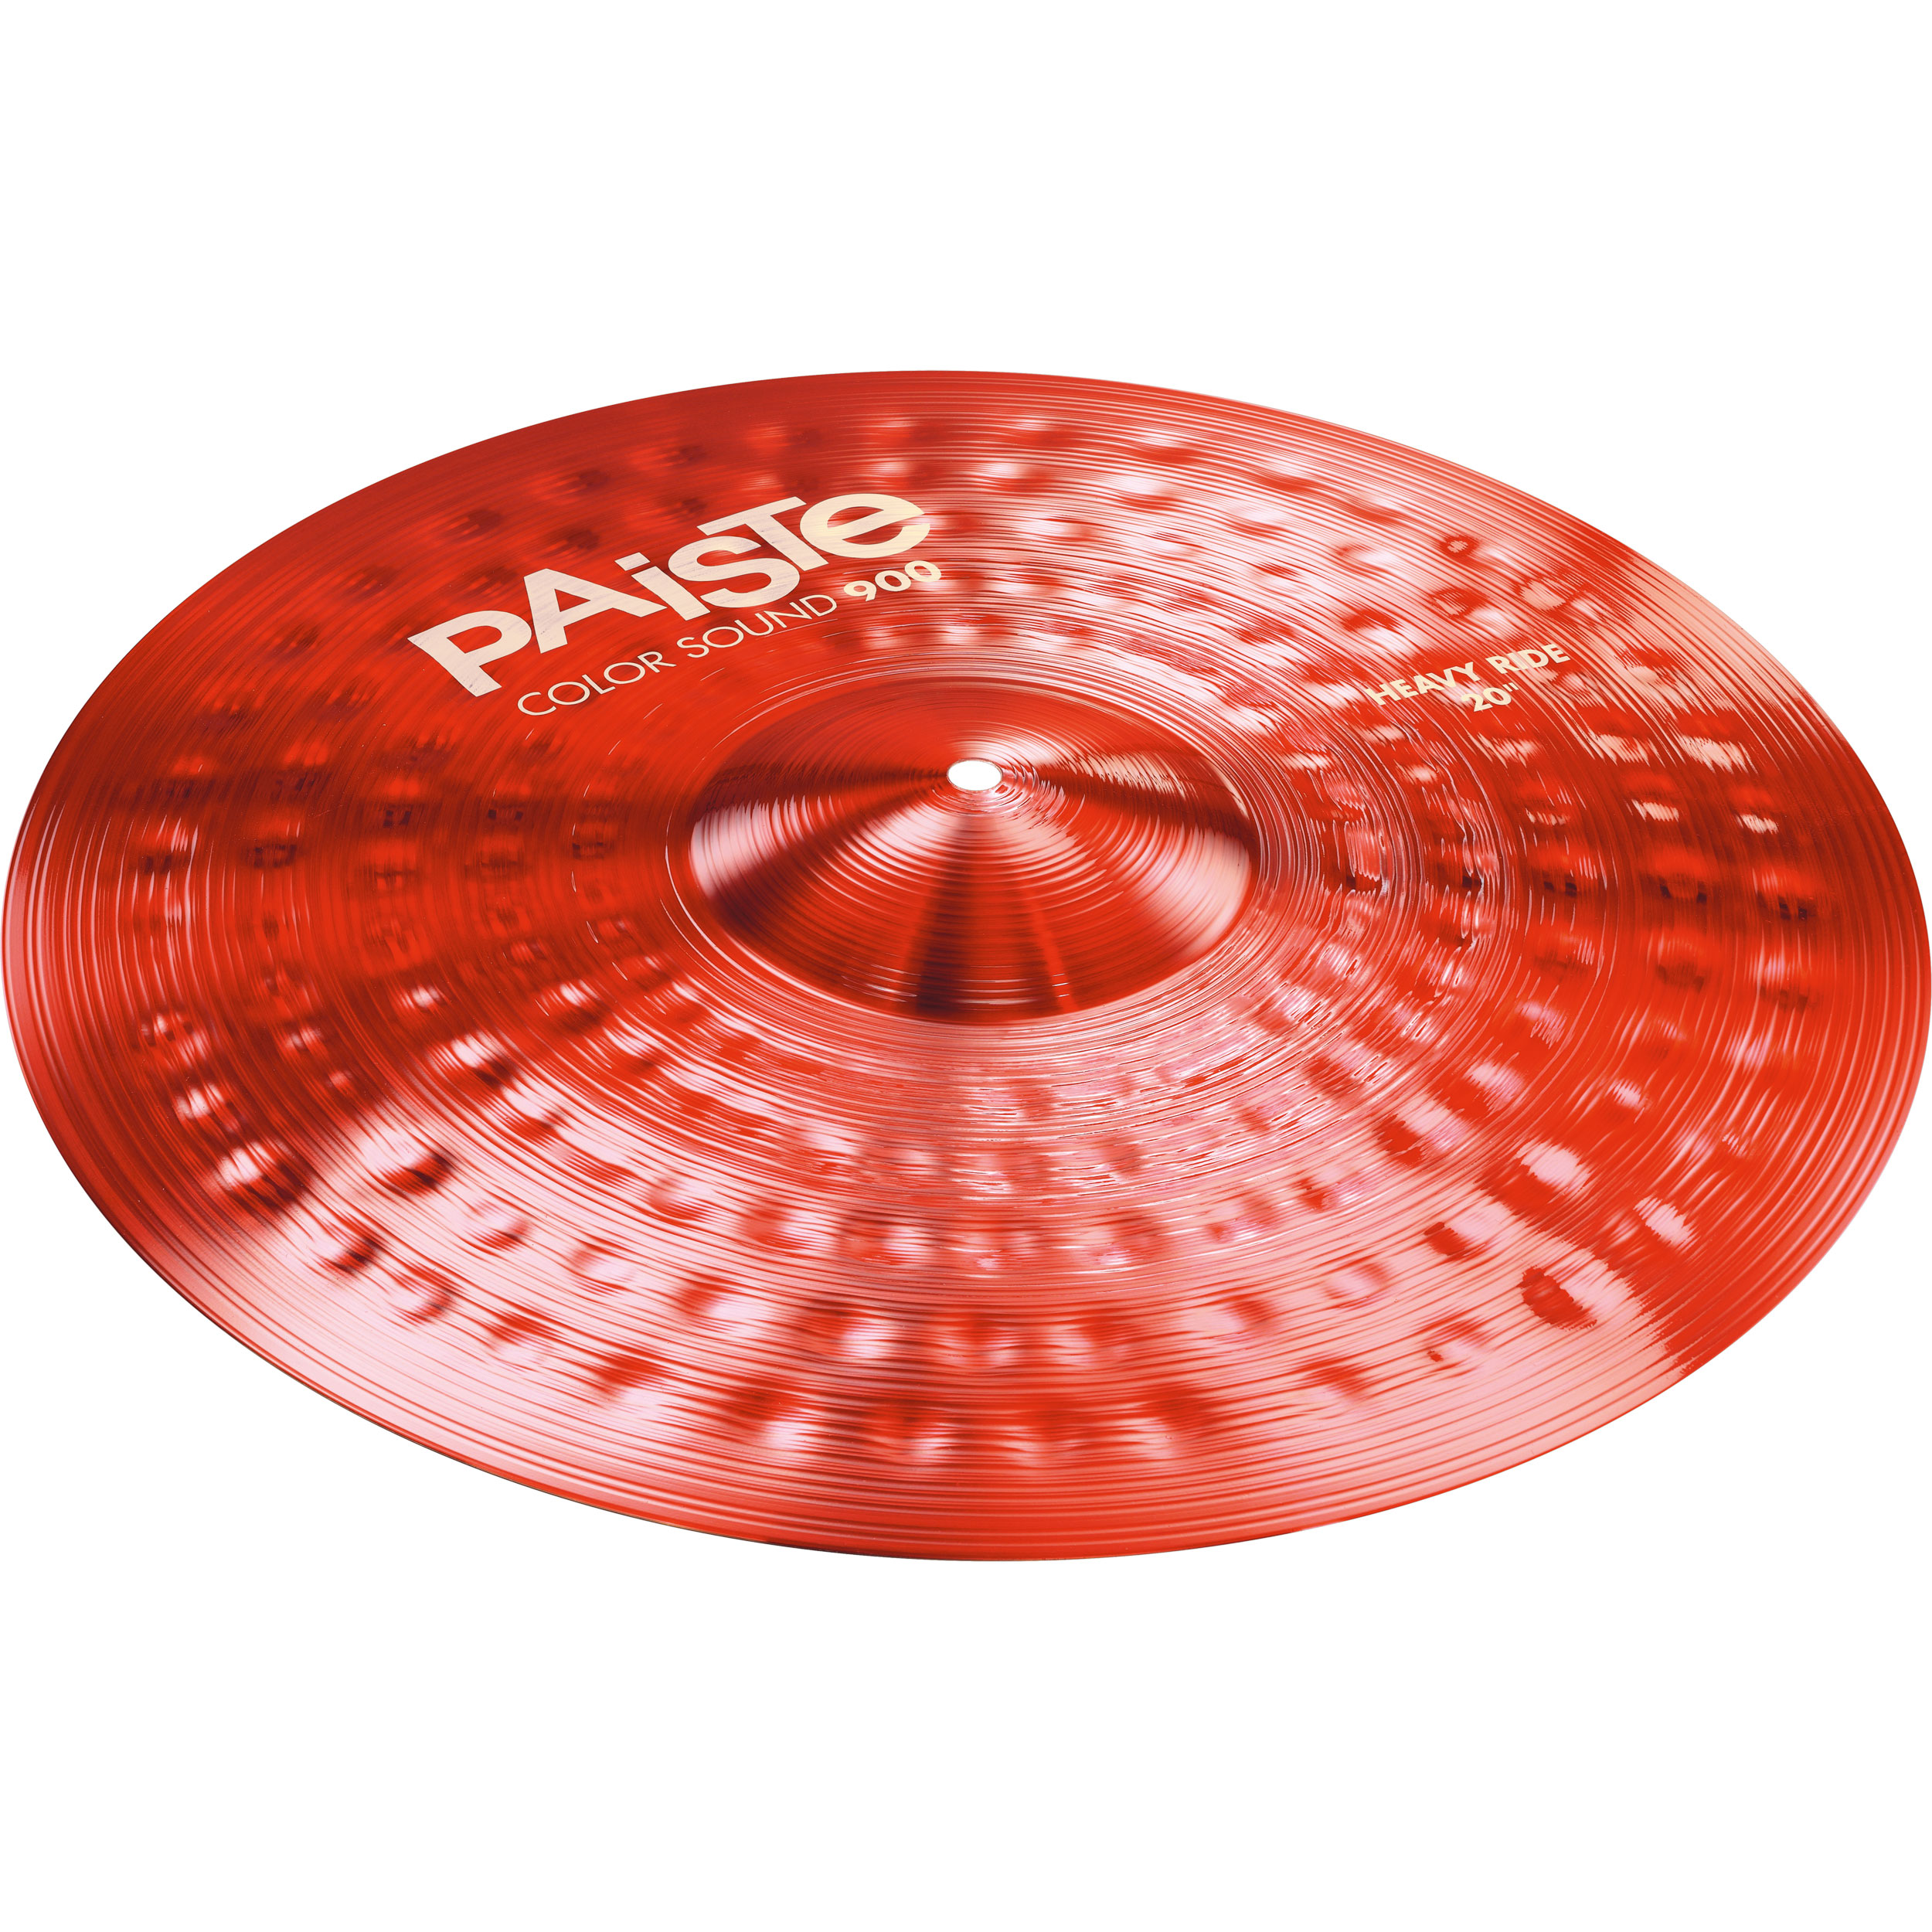 """Paiste 20"""" Color Sound 900 Red Heavy Ride Cymbal"""